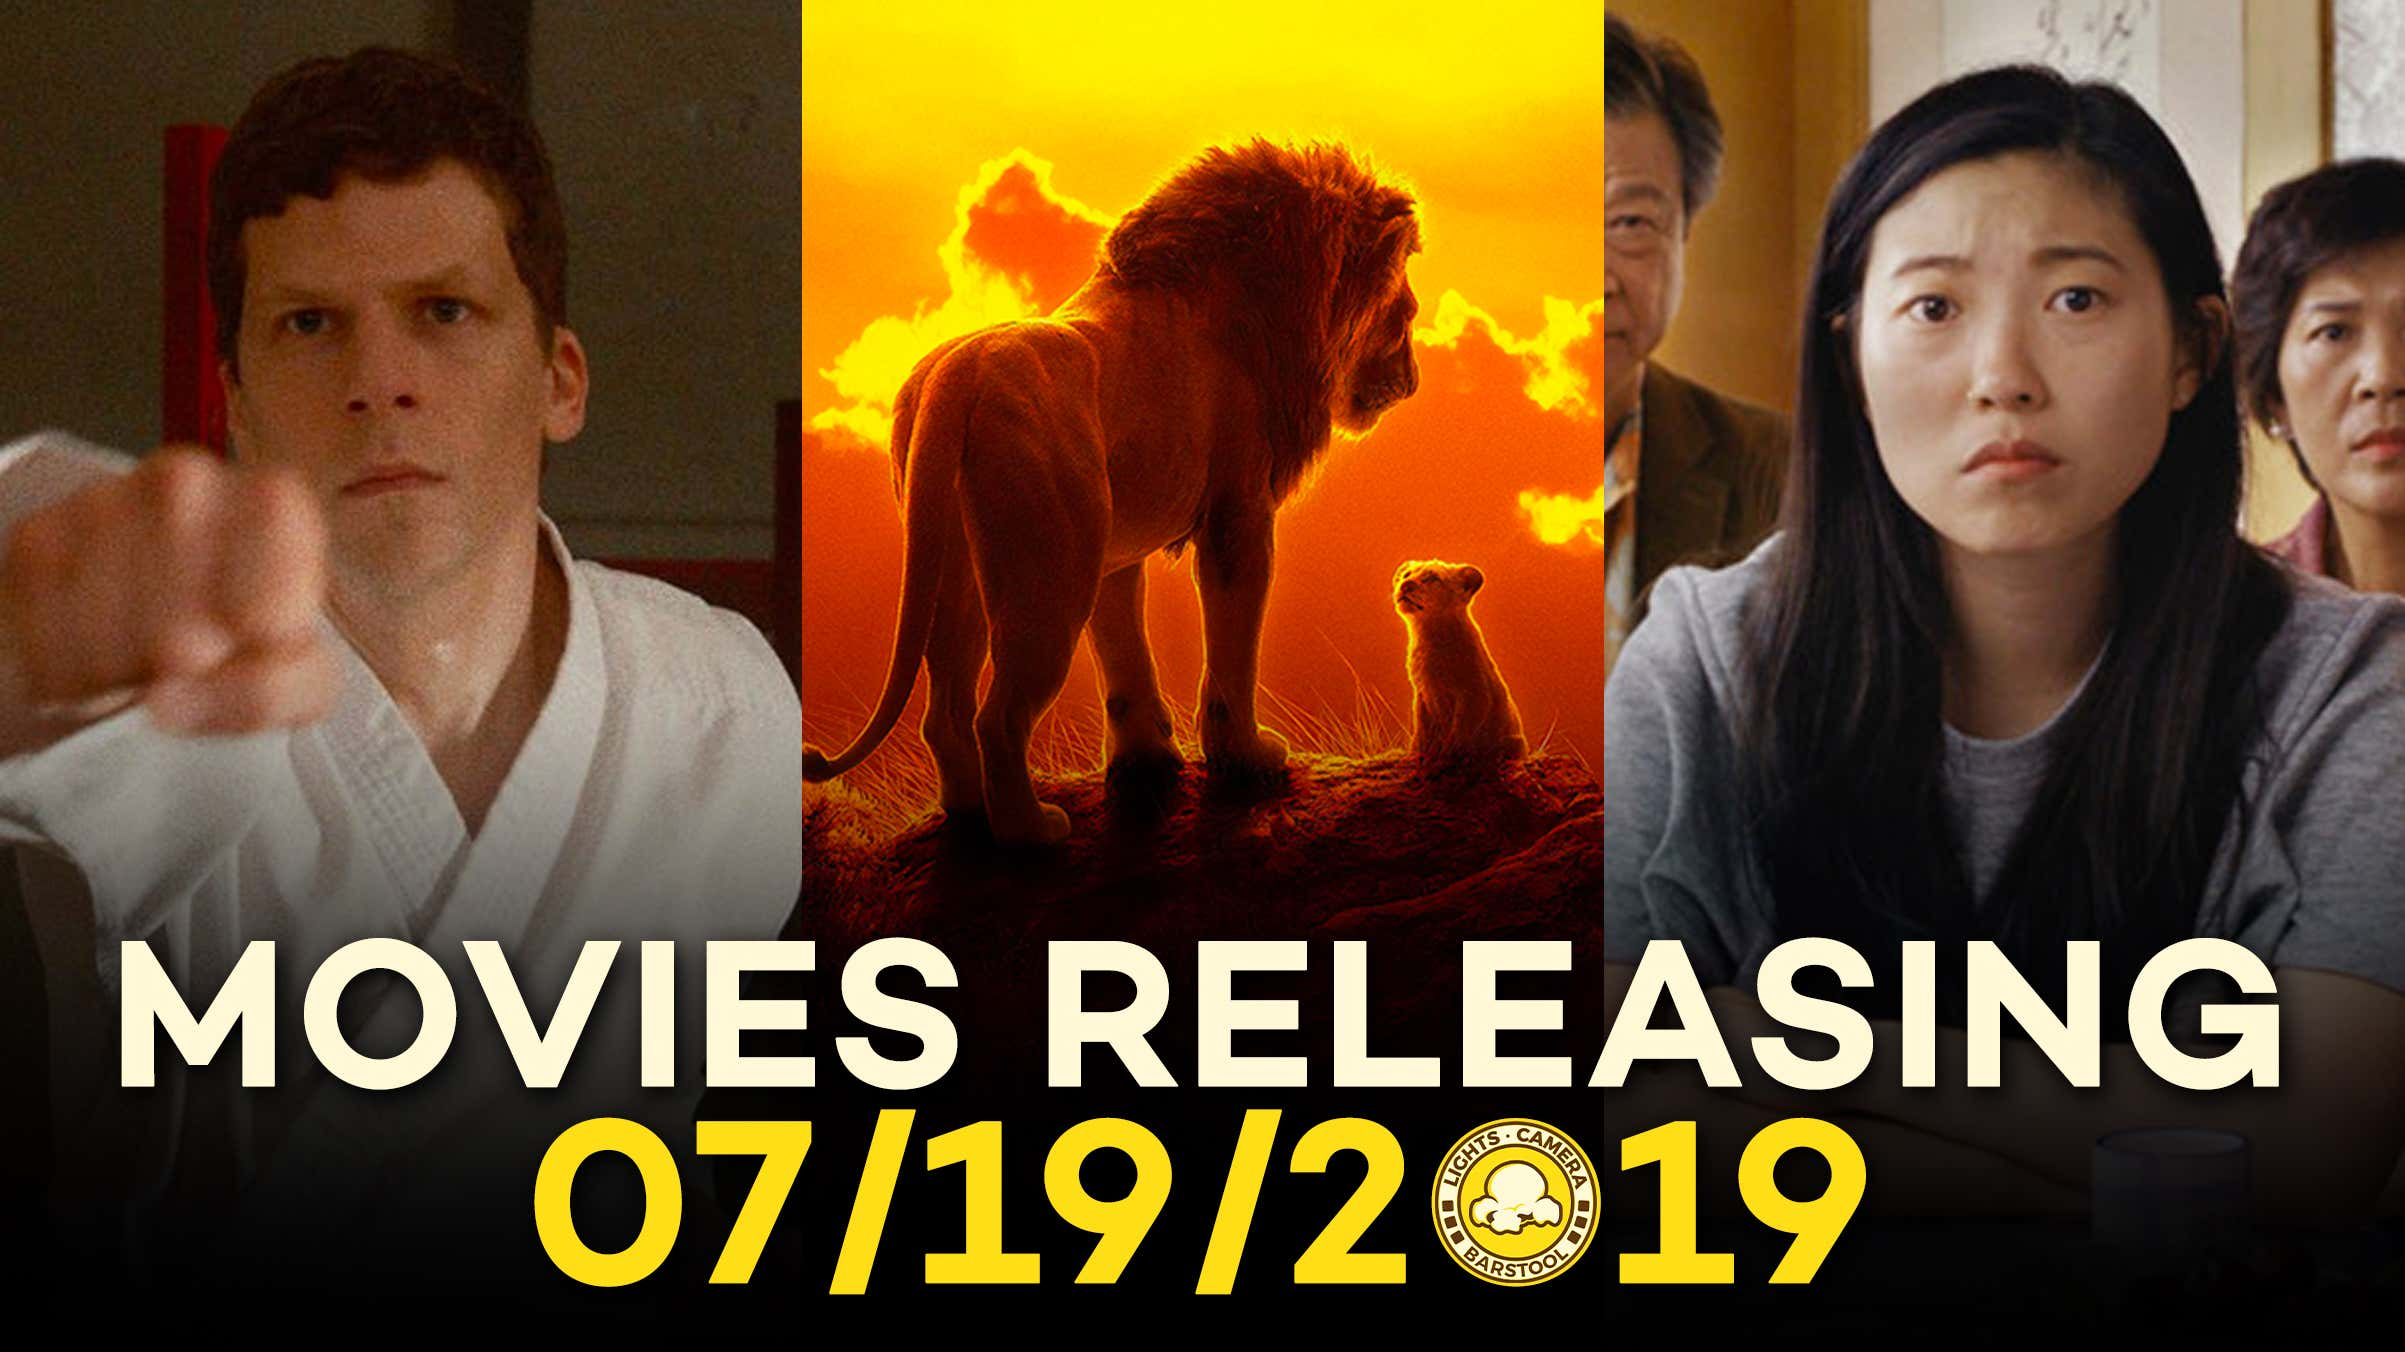 What Movies Are Releasing This Weekend? (July 19th, 2019